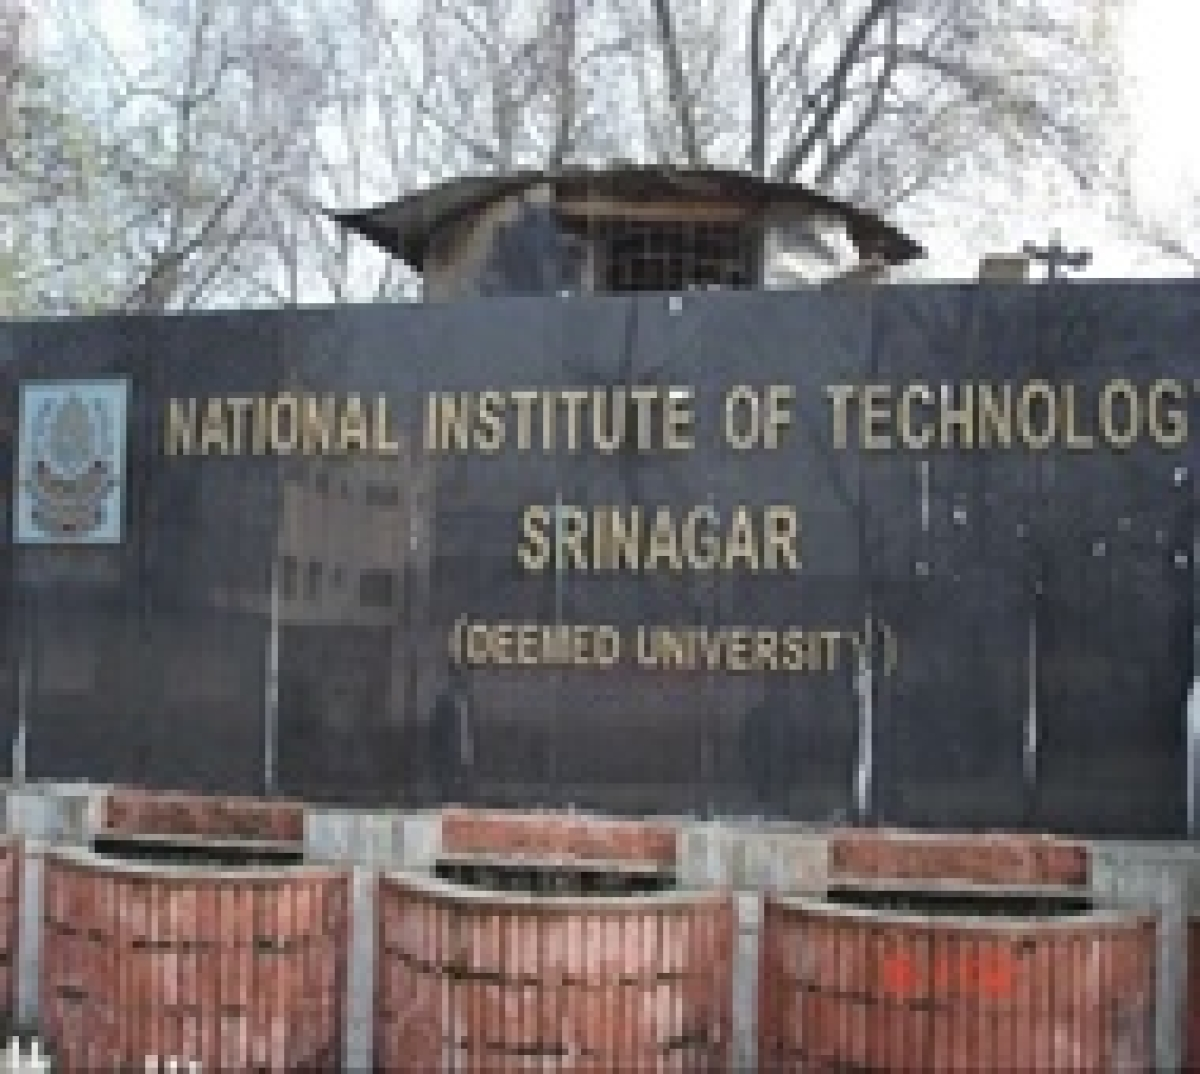 150 youths head to Srinagar to support NIT students